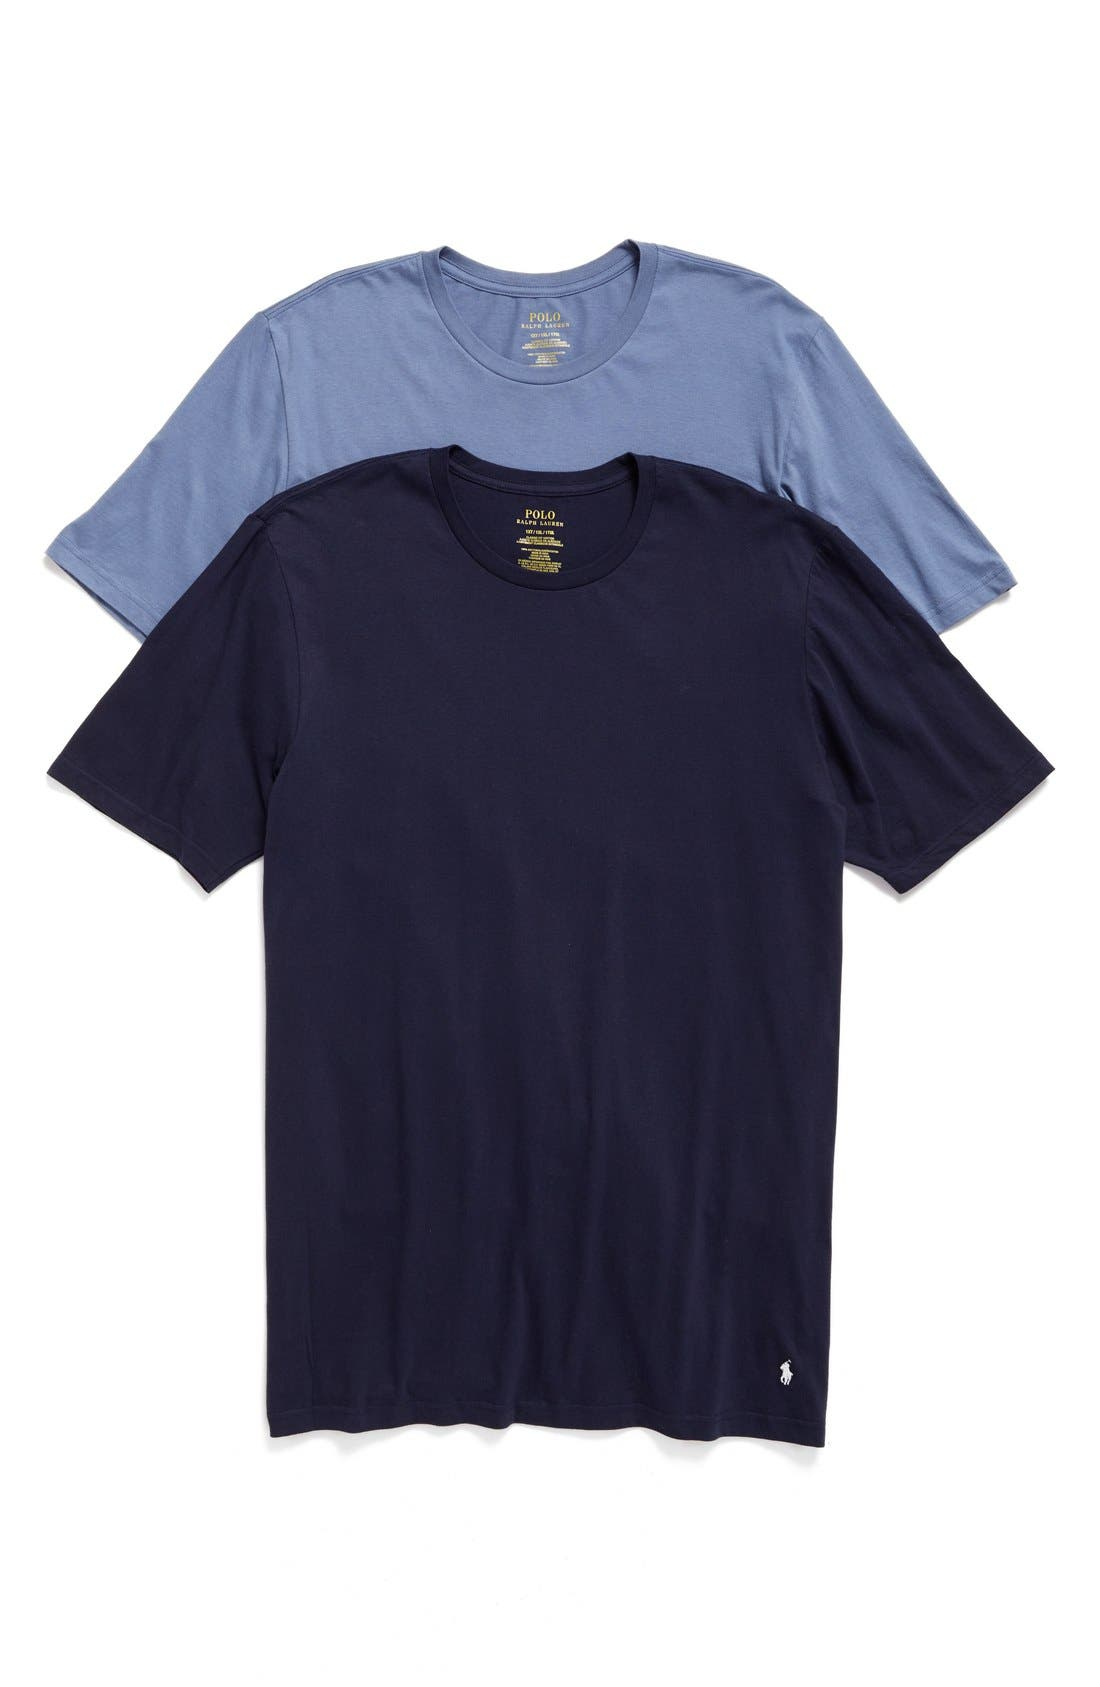 POLO RALPH LAUREN 2-Pack Classic Fit T-Shirts